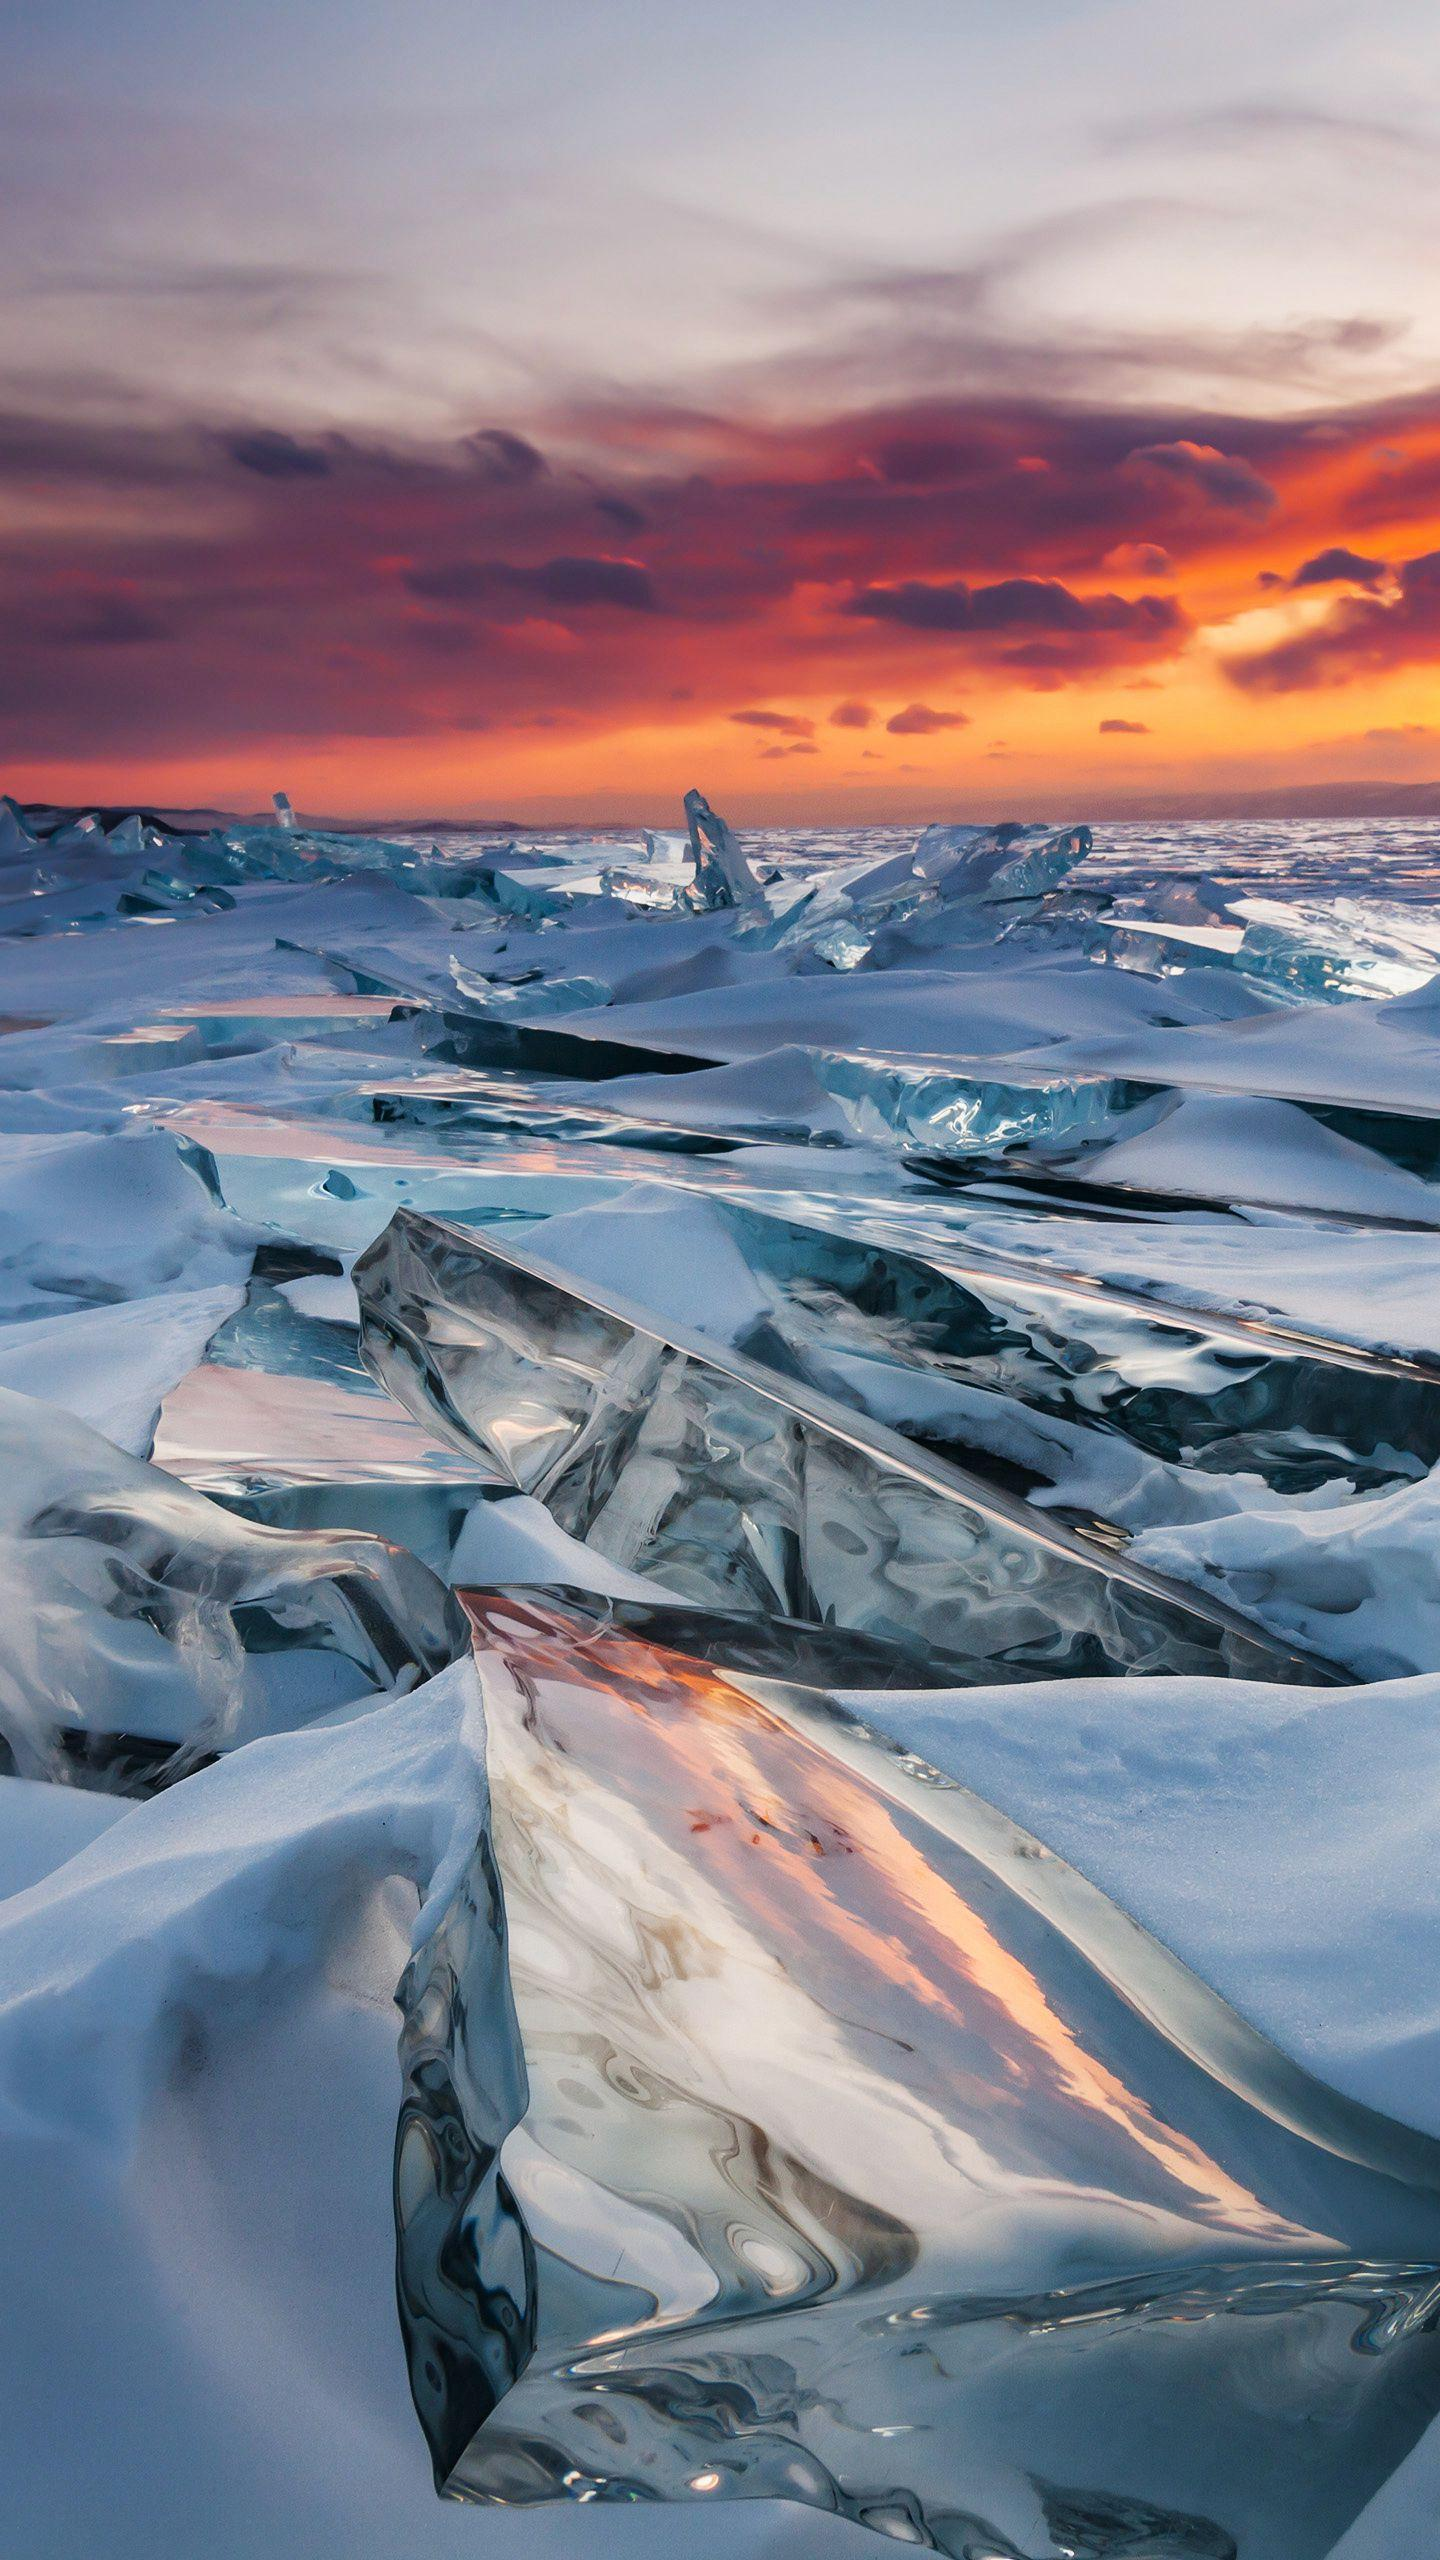 Russia - Lake Baikal. The criss-crossing cracks of the lake, the rolling ice ridges, and the majestic Lake Baikal in winter are amazing.